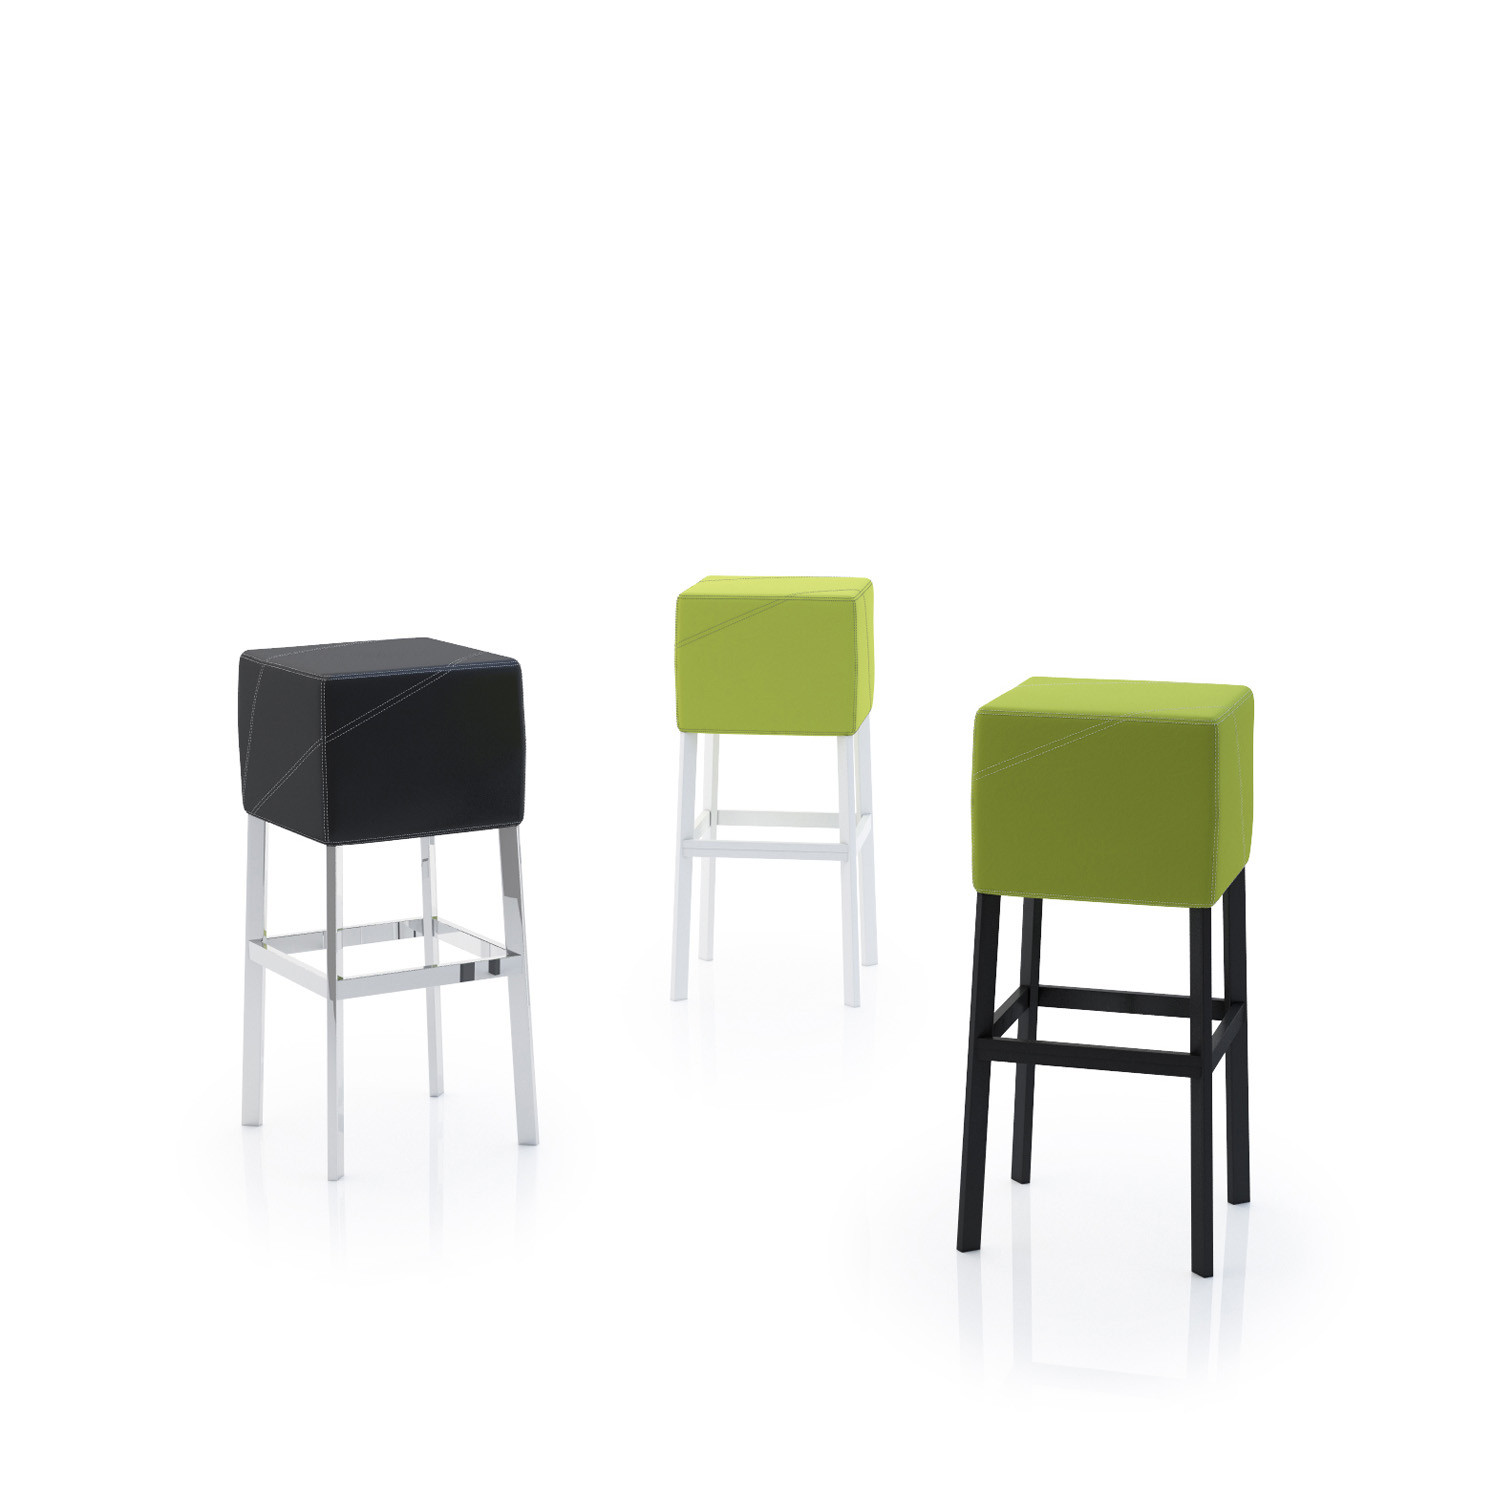 Cube 3.0 Bar Stools by Nicola Cacco Design